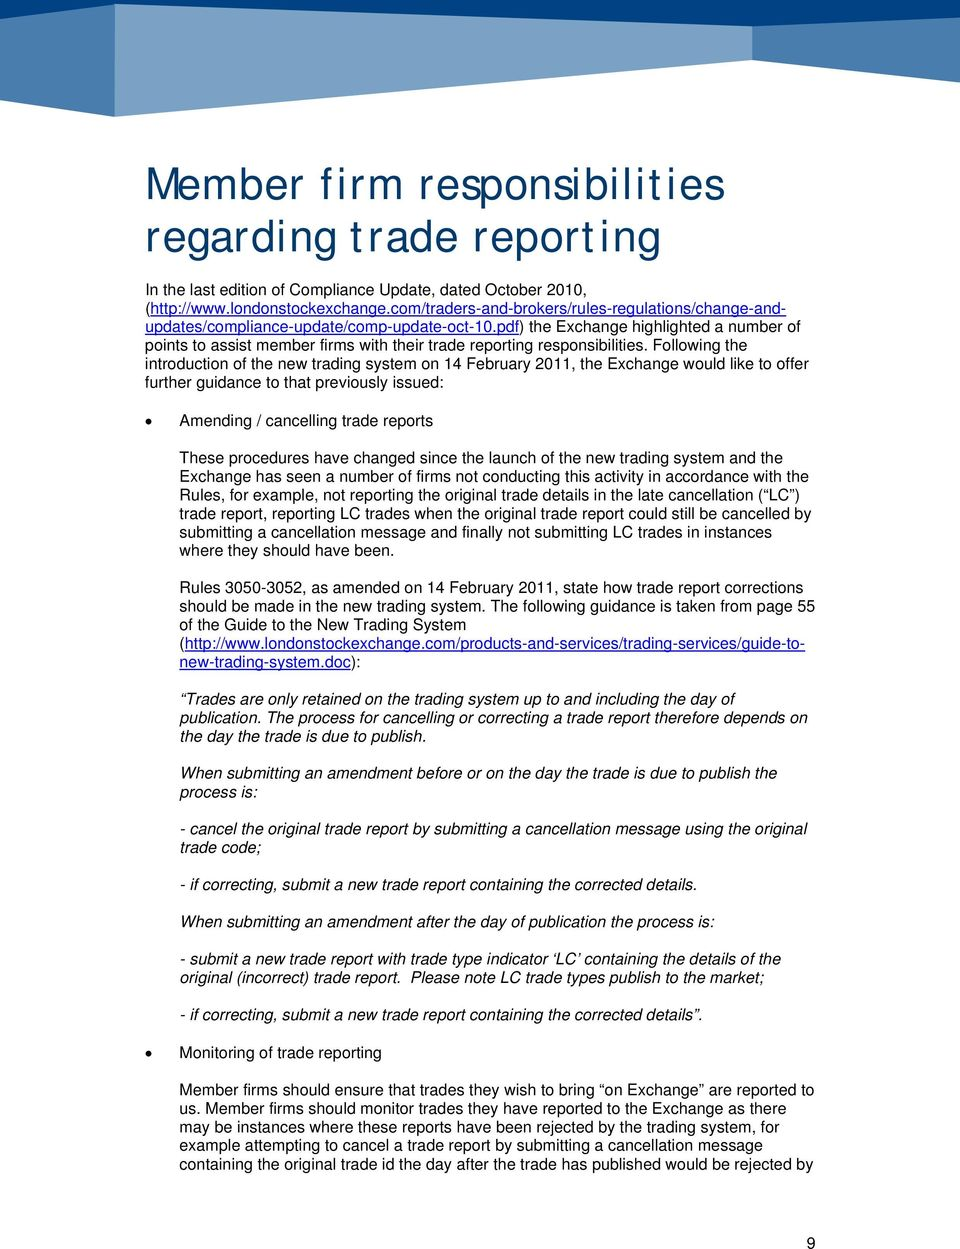 pdf) the Exchange highlighted a number of points to assist member firms with their trade reporting responsibilities.